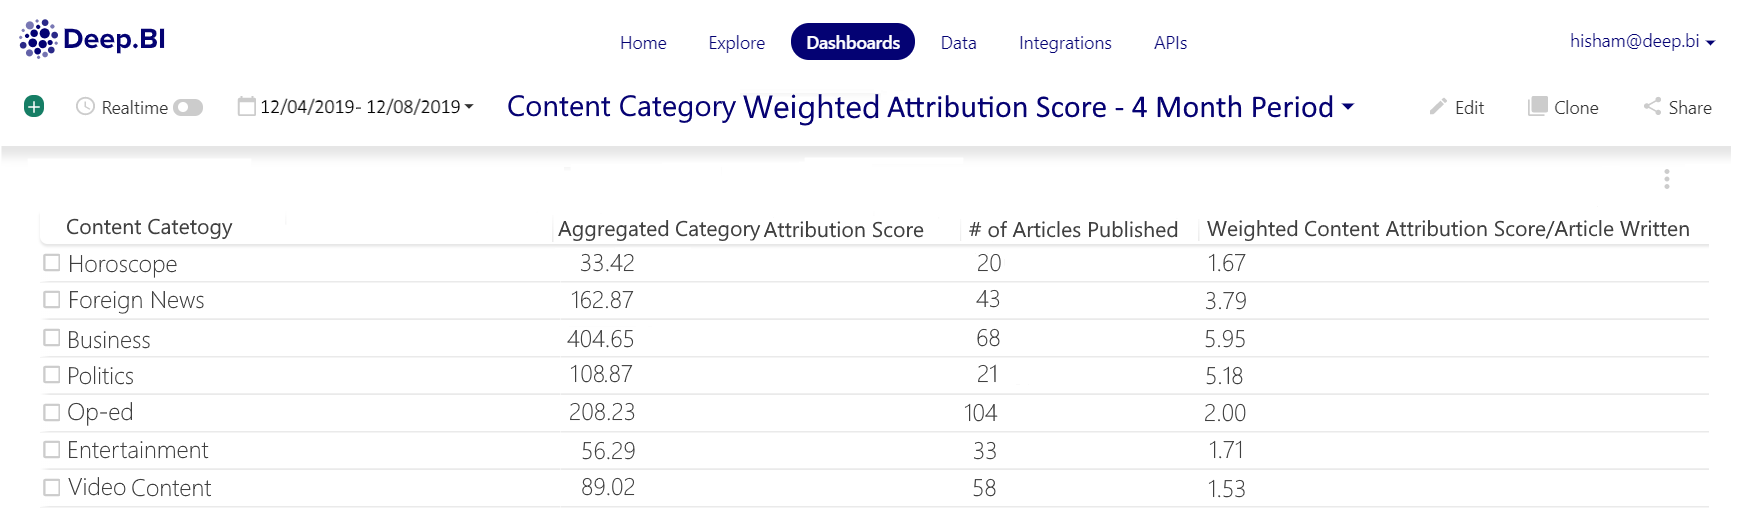 Content+Category+Weighted+Attribution+Score+-+4+Month+Period